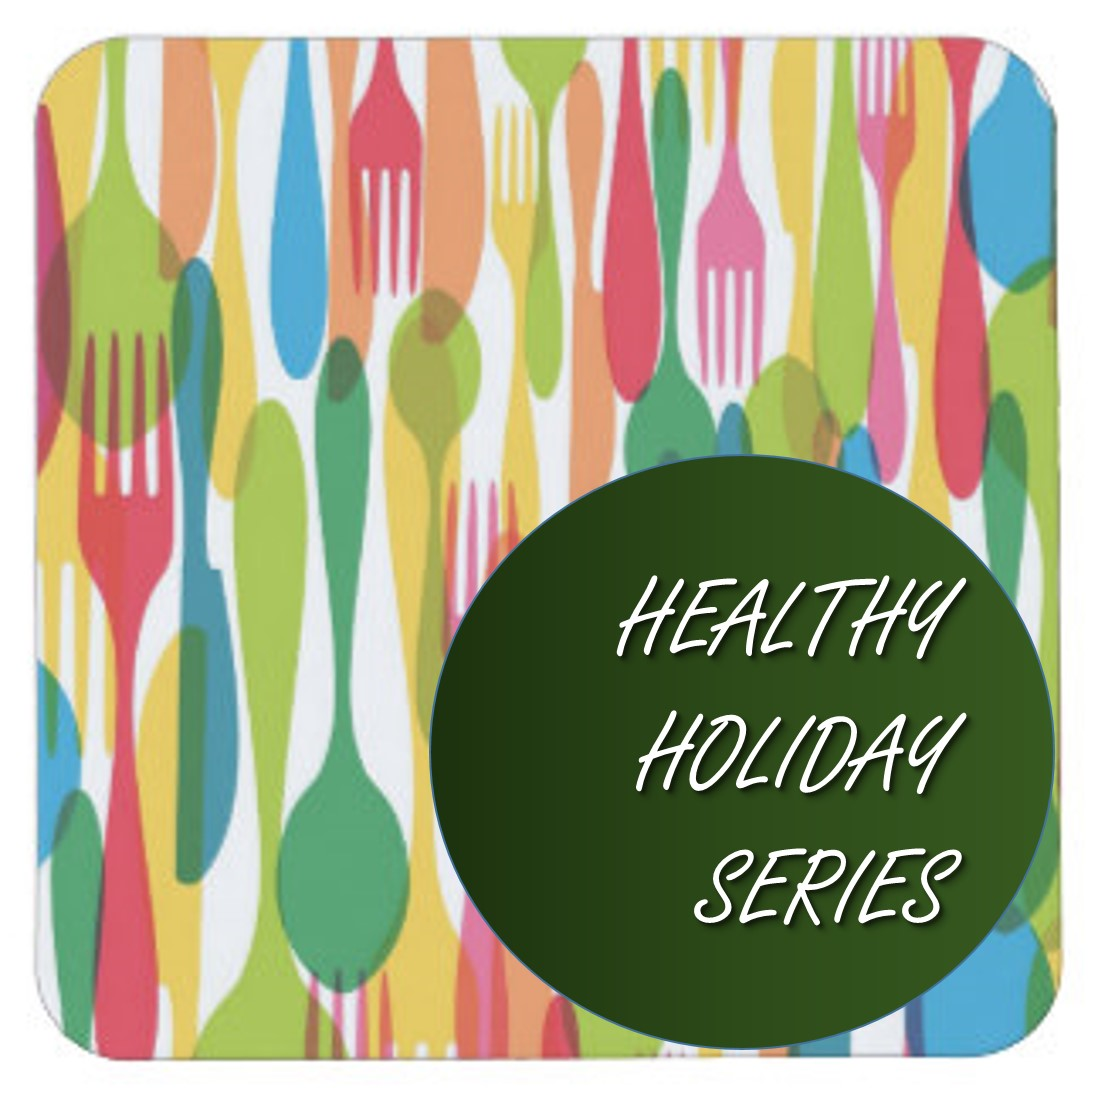 Healthy Holiday Series